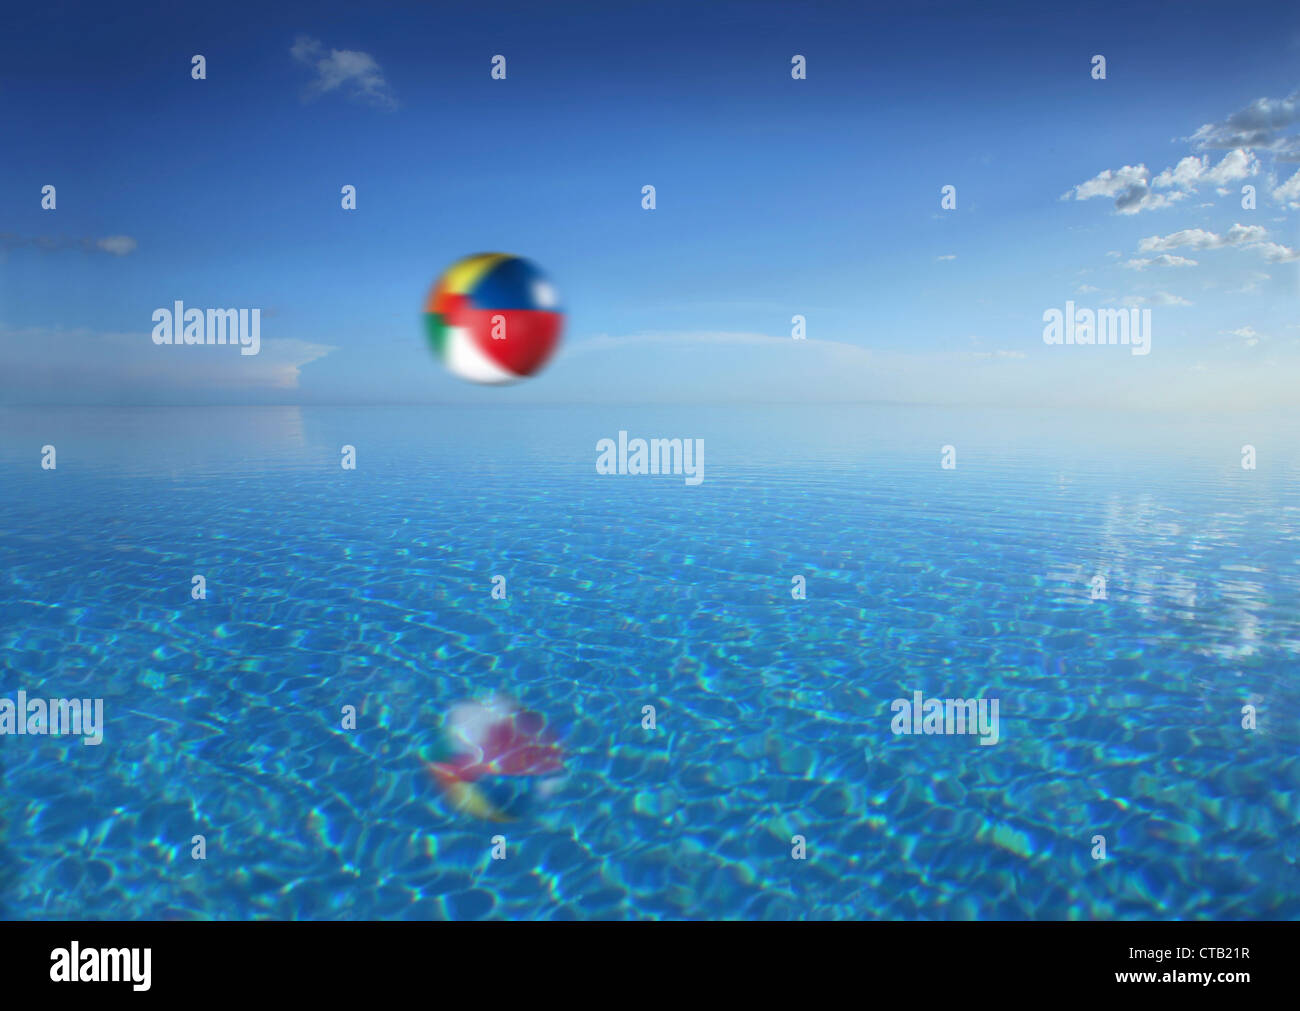 Beachball flying over an infinity pool, Bohol island, Visayas, Philippines - Stock Image